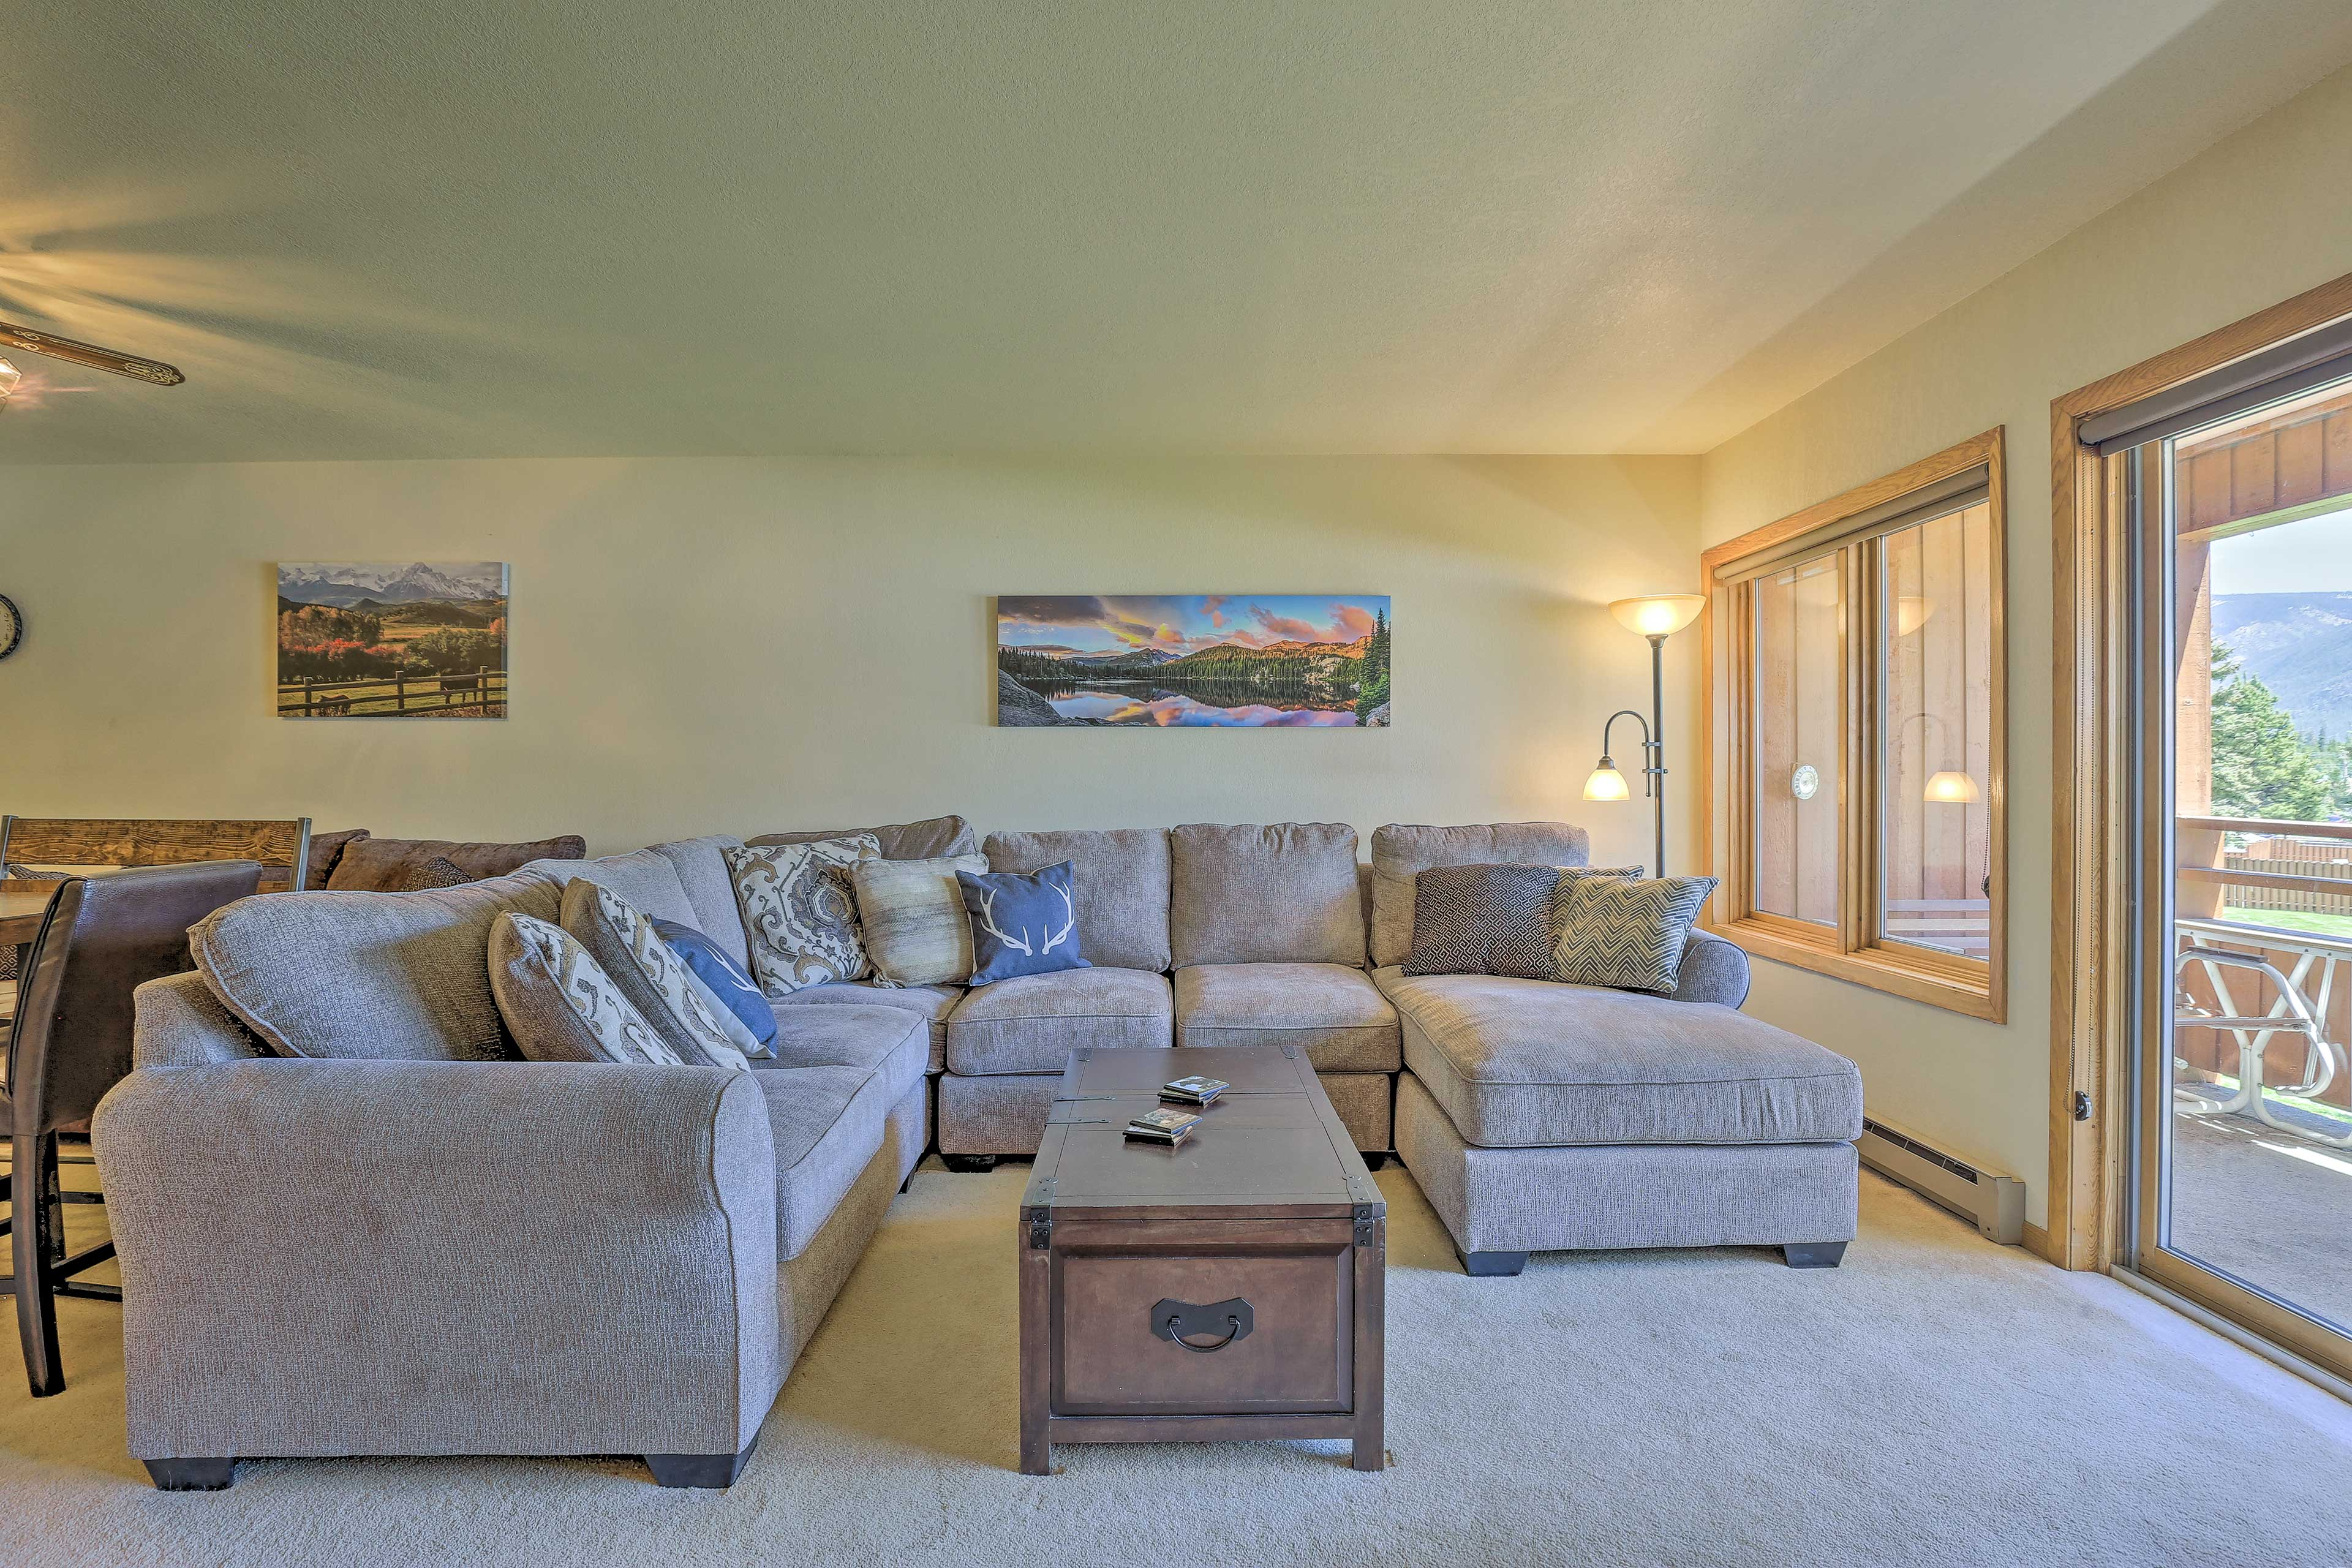 The large sliding glass doors offer great views of the area.